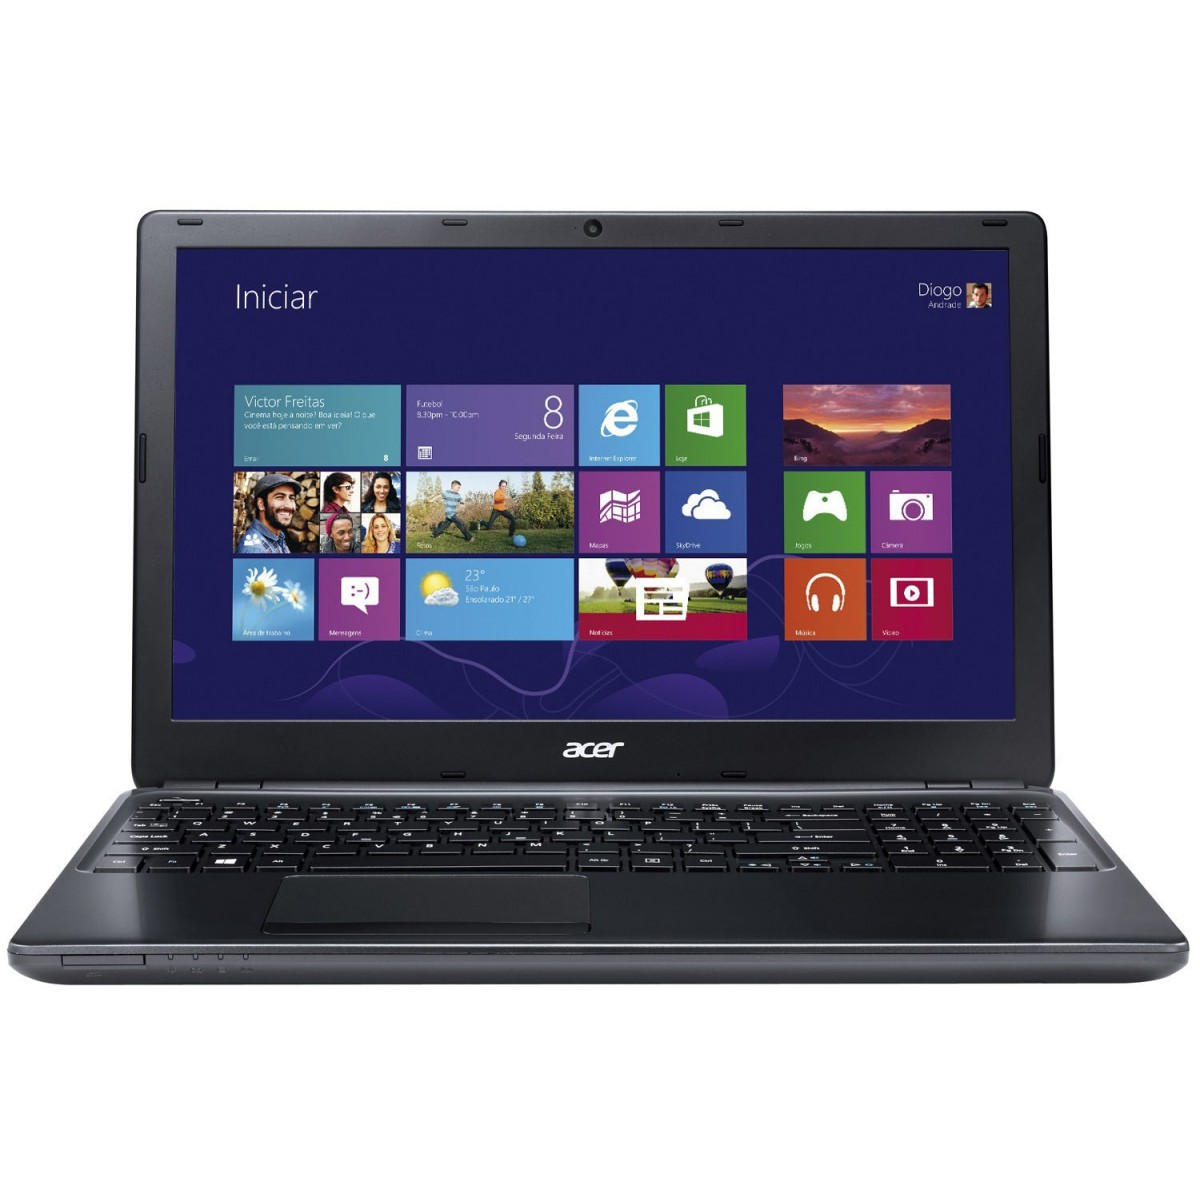 Notebook Aspire E1-572-6 BR691 I5-4200U 4GB 500GB Gravador DVD Leitor  HDMI Wireless LED 15.6 Wind8 Antivirus - Acer